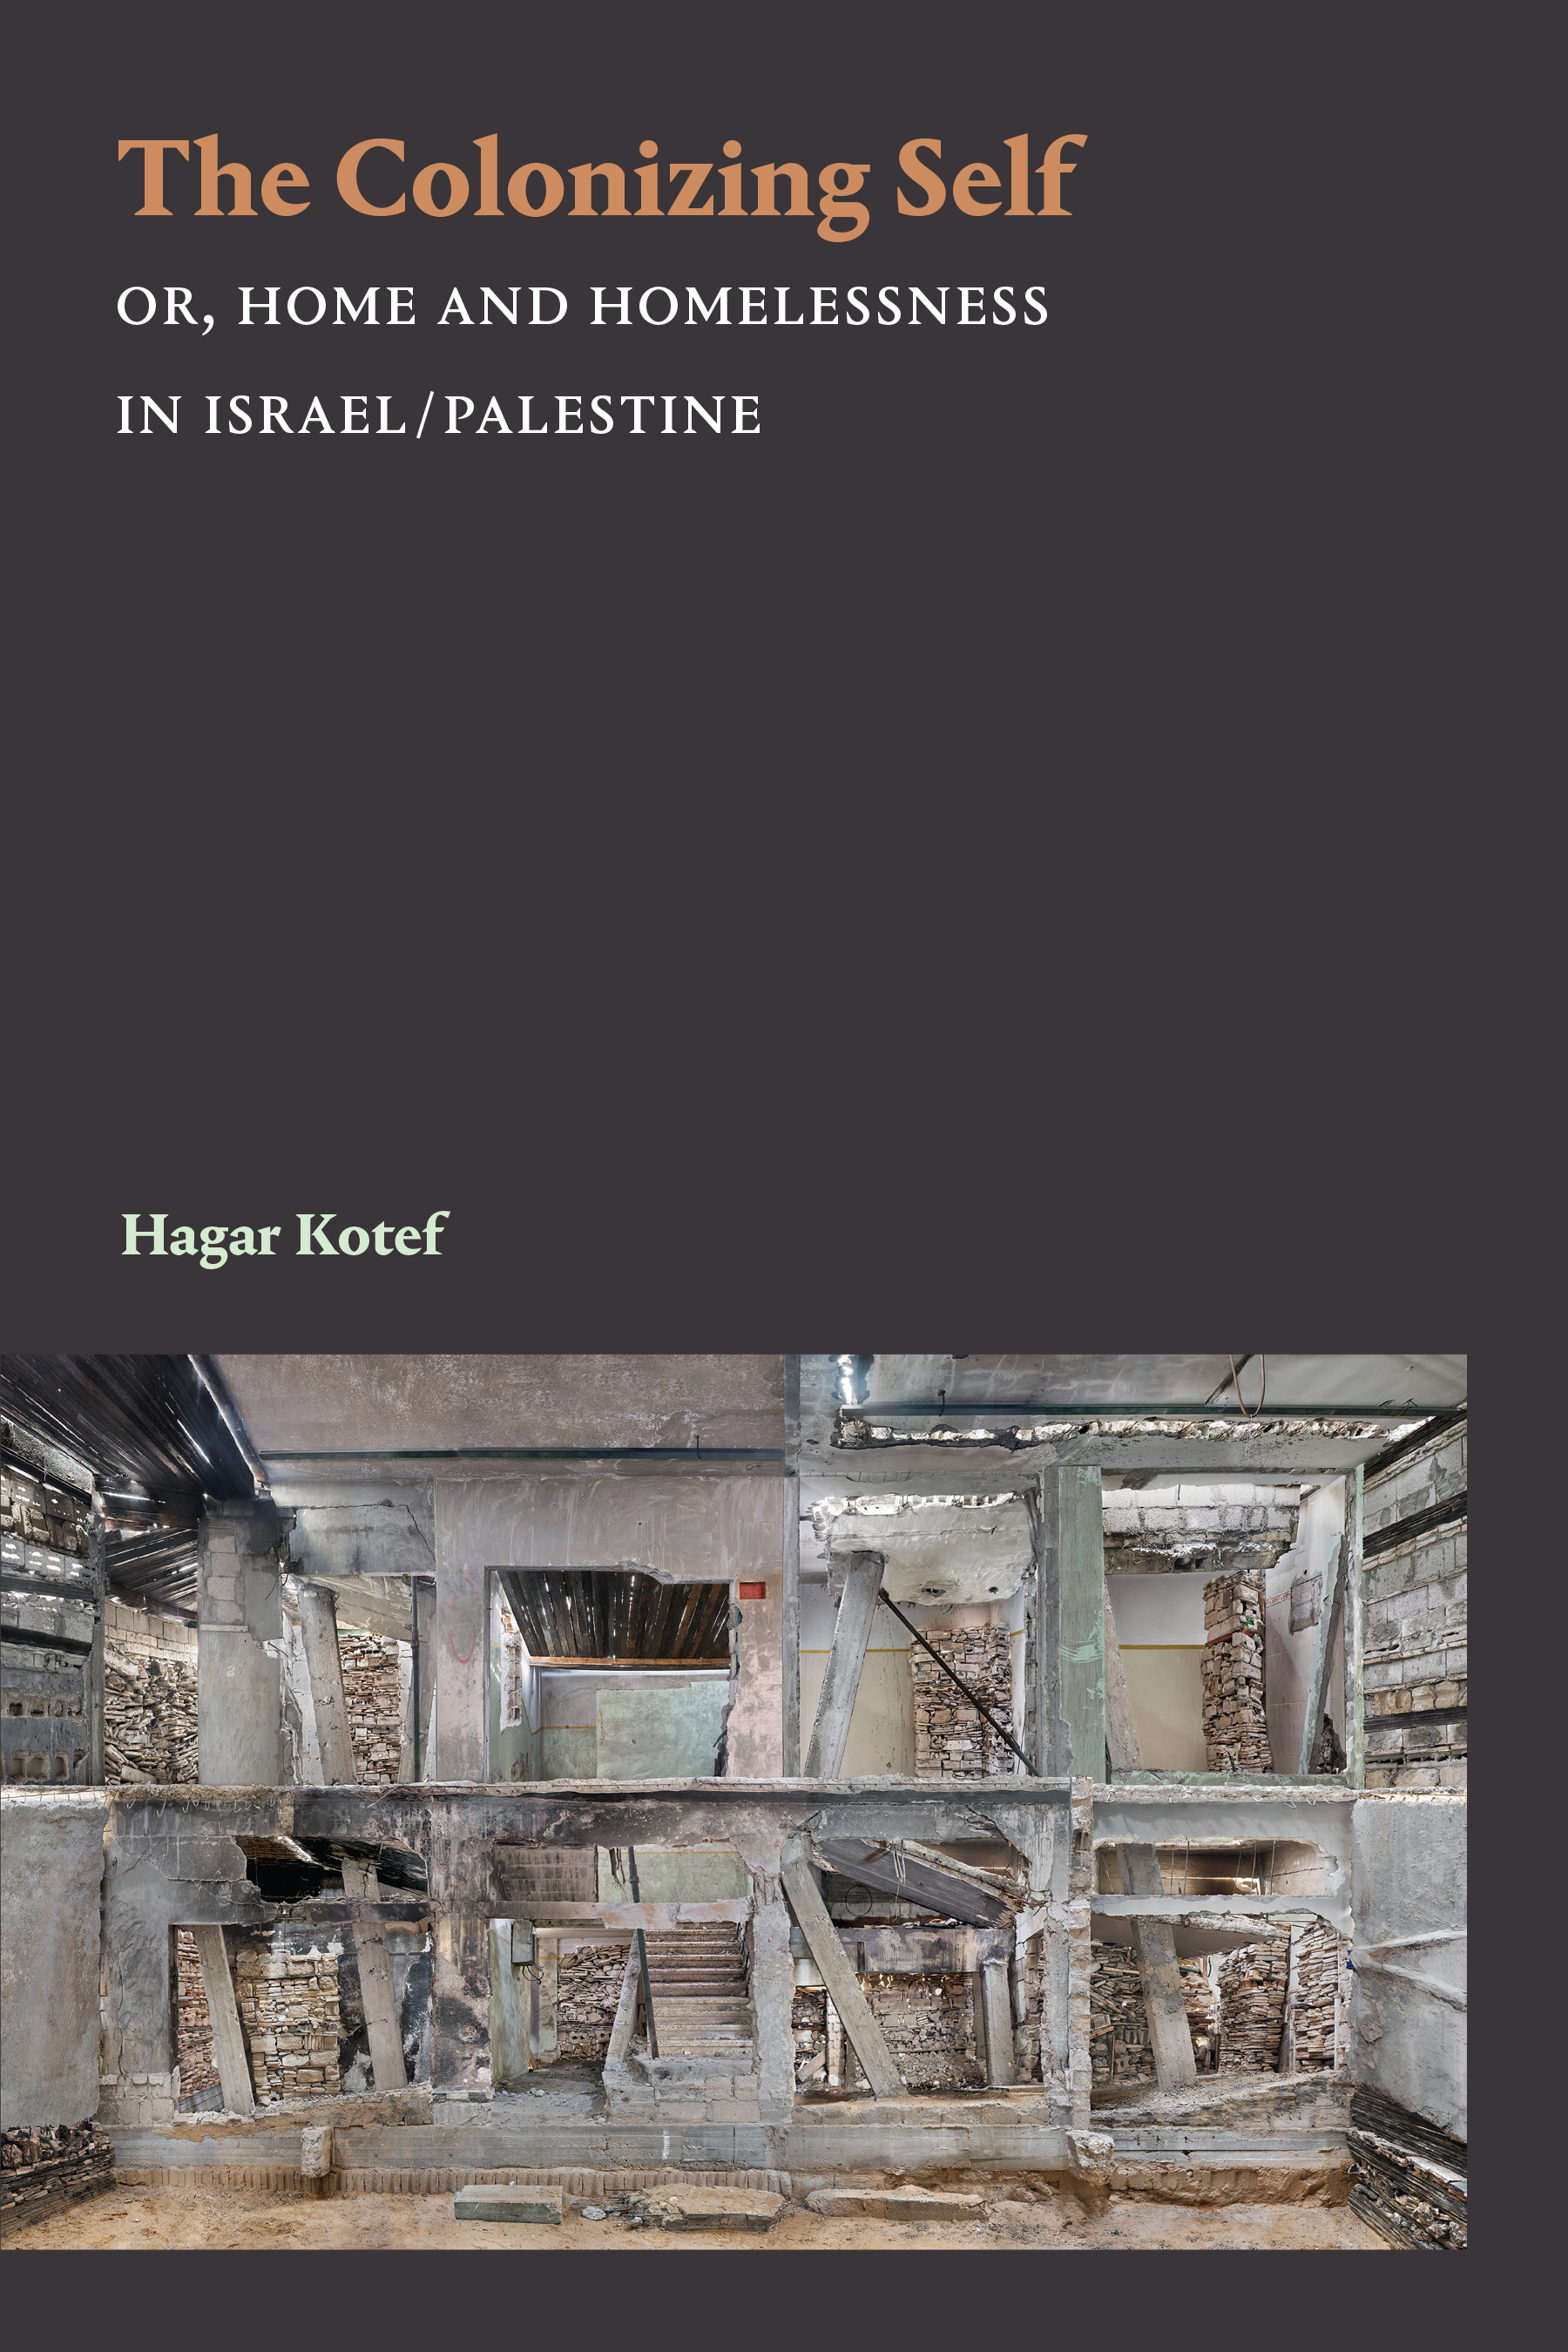 The Colonizing Self: Or, Home and Homelessness in Israel/Palestine